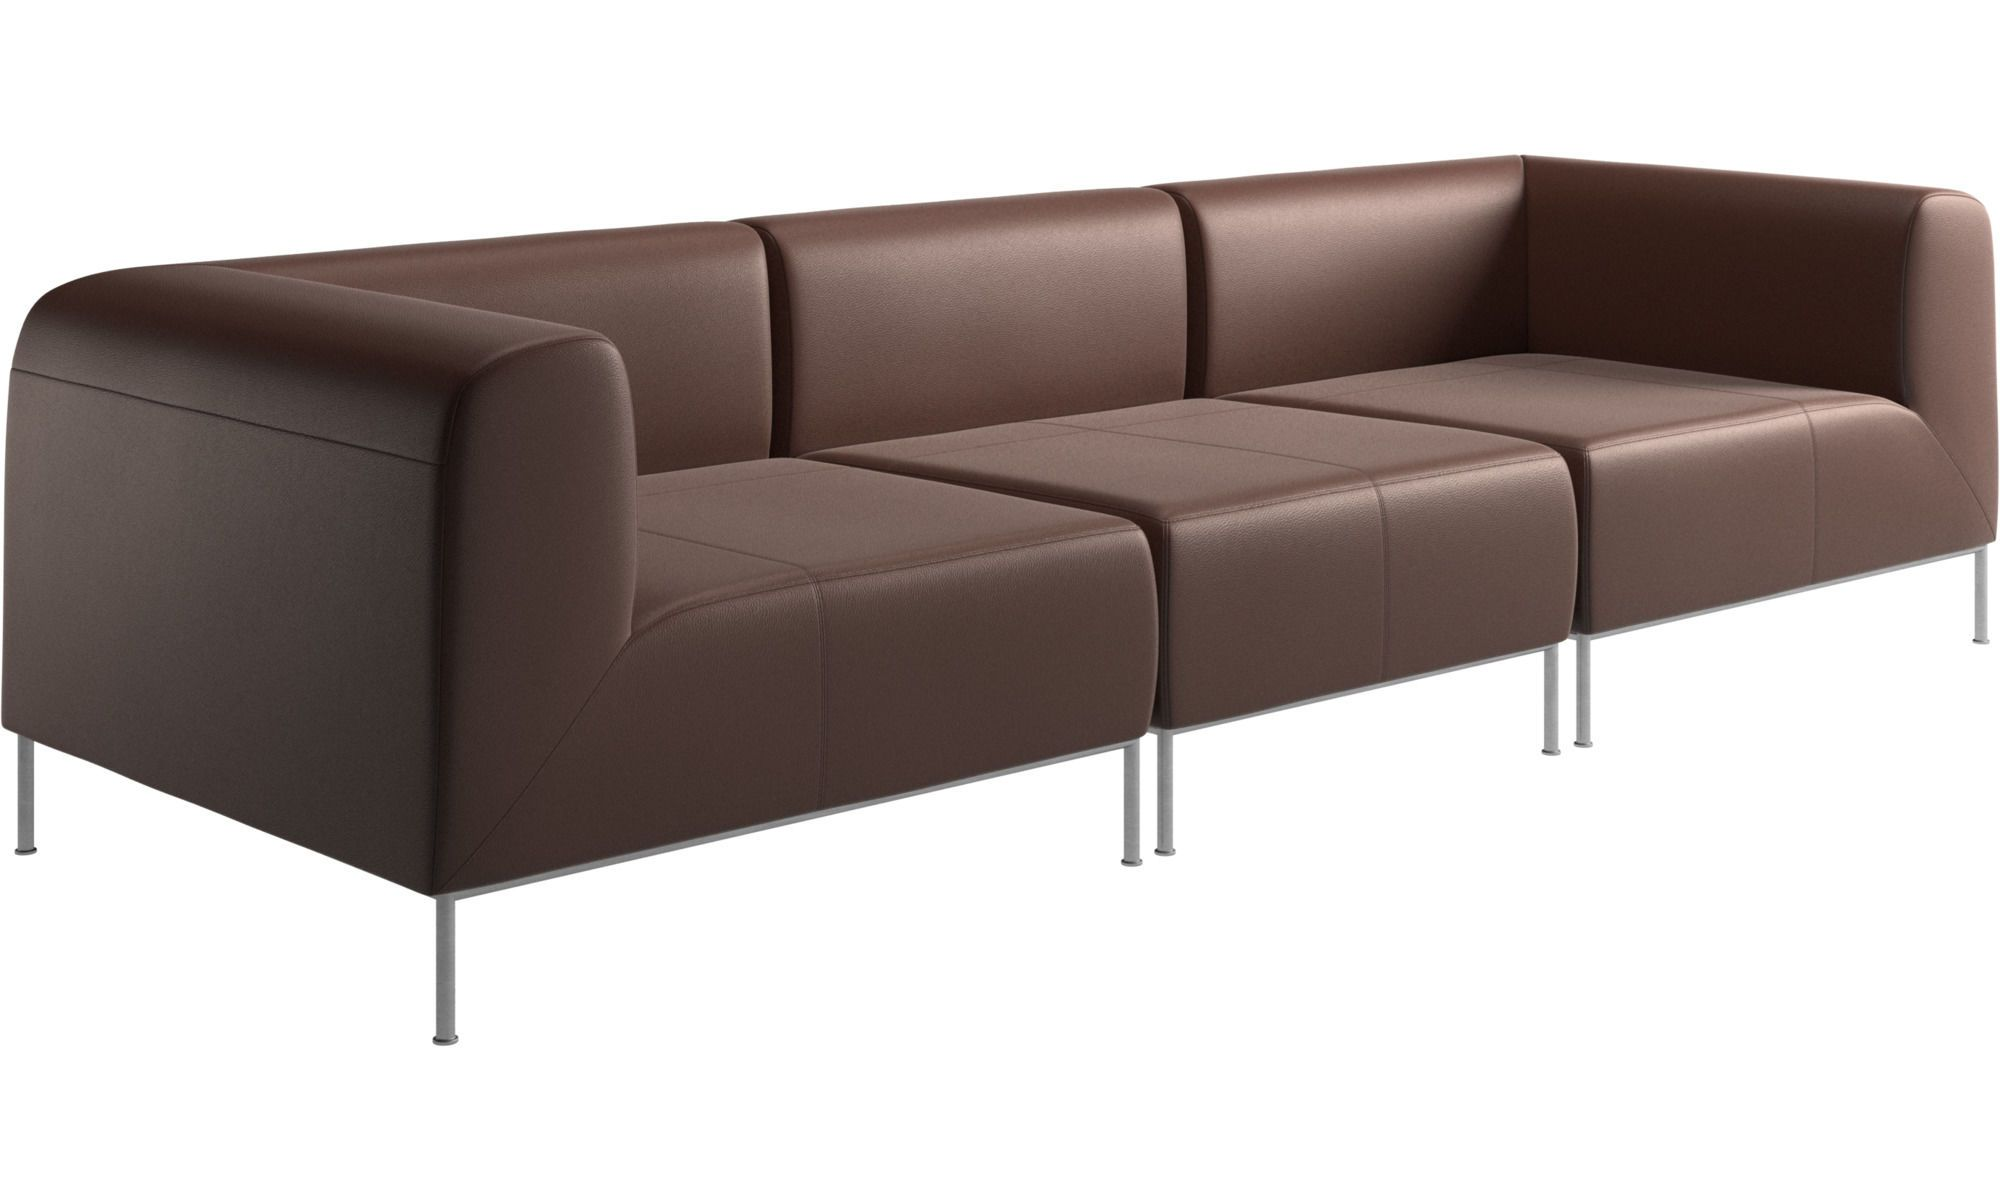 Miraculous Modular Sofas Miami Sofa Brown Leather Sofa In 2019 Download Free Architecture Designs Scobabritishbridgeorg